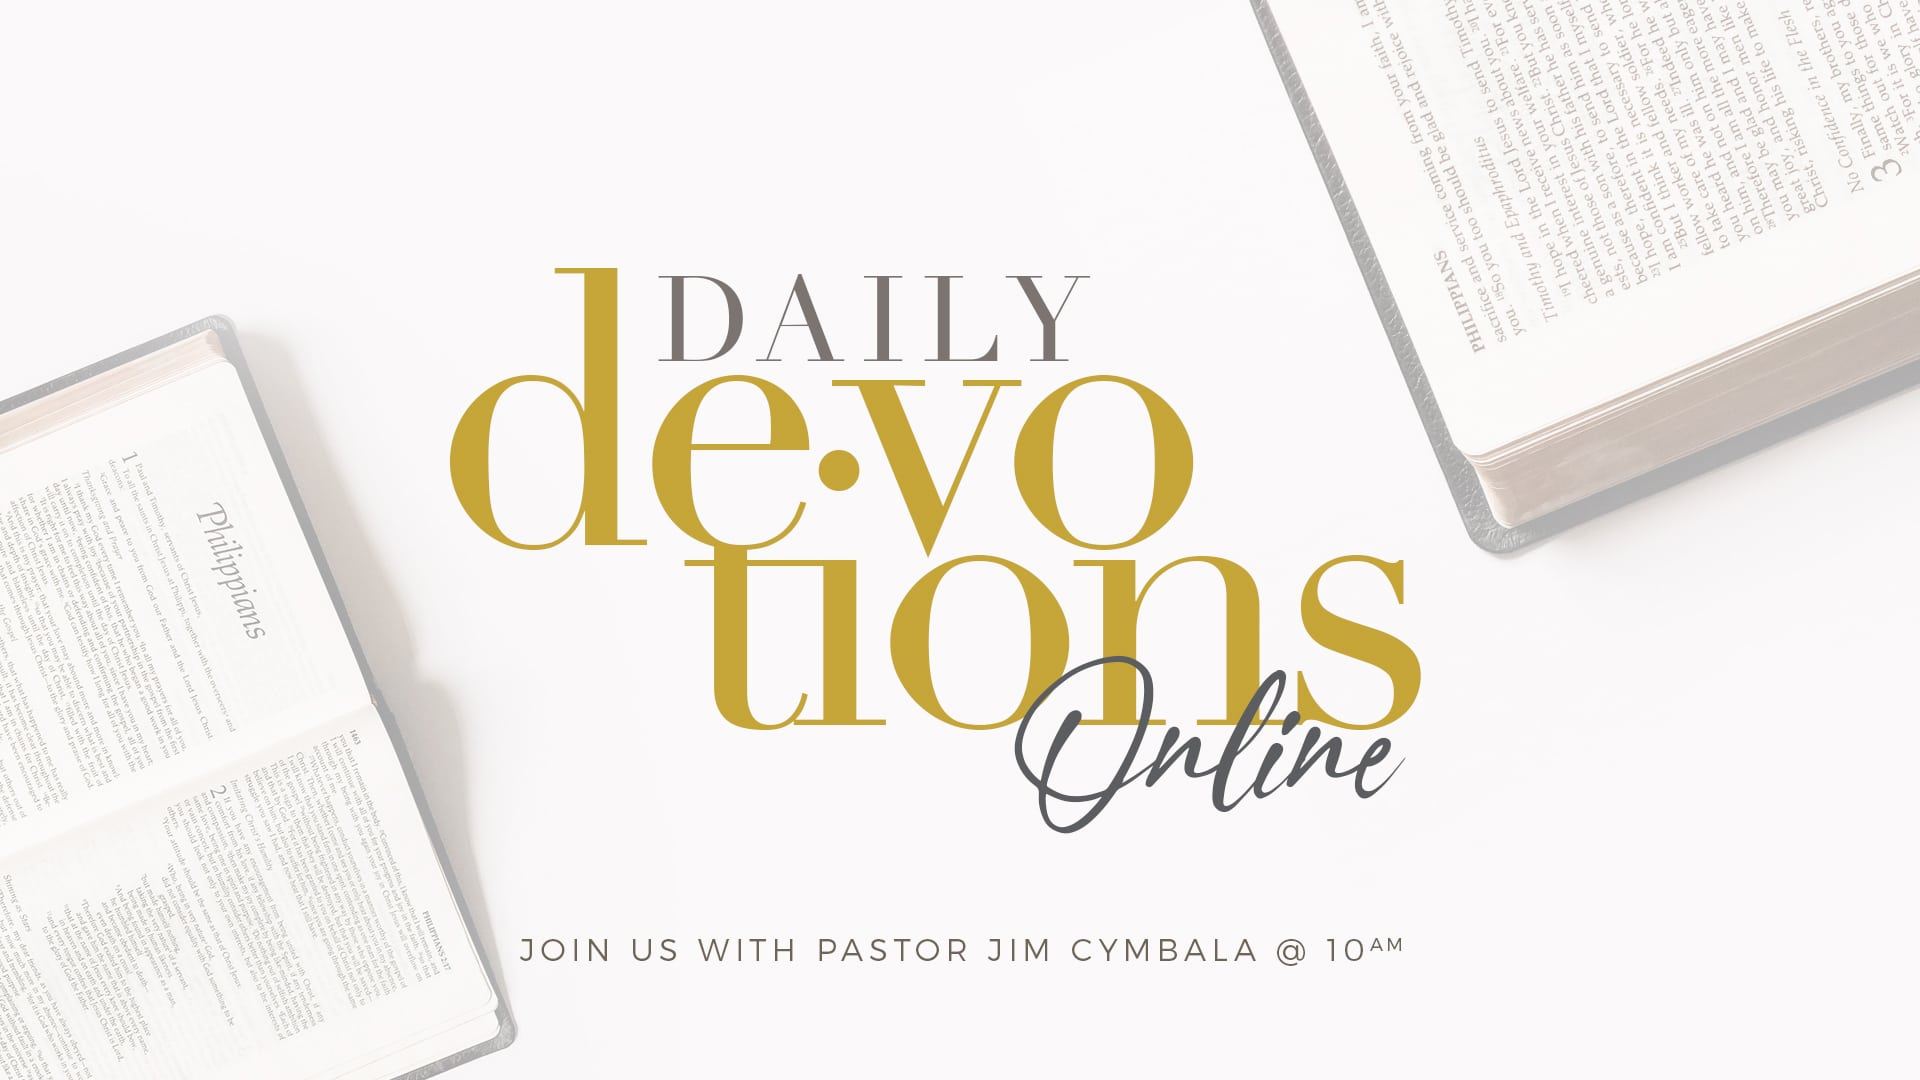 daily devotions online text